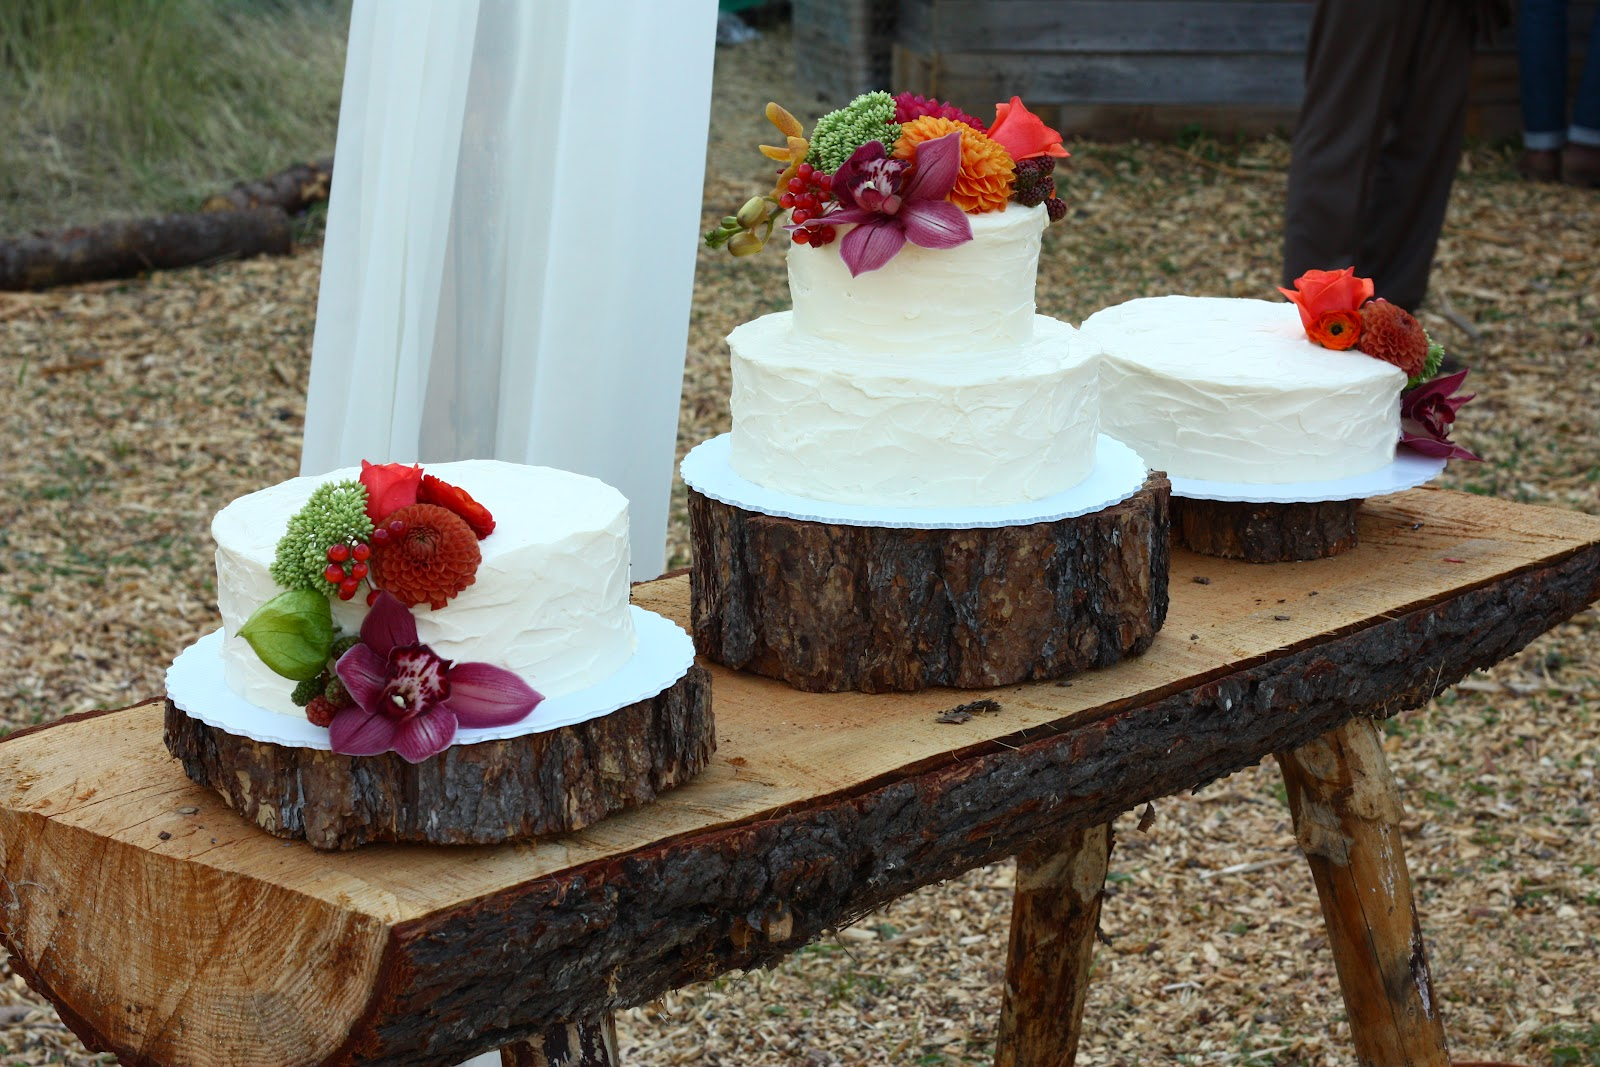 Pie in the sky wedding cake roundup my last delivery of the weekend was to a do it yourself wedding way up on a mountain ridge accessible by a long dusty dirt road solutioingenieria Images